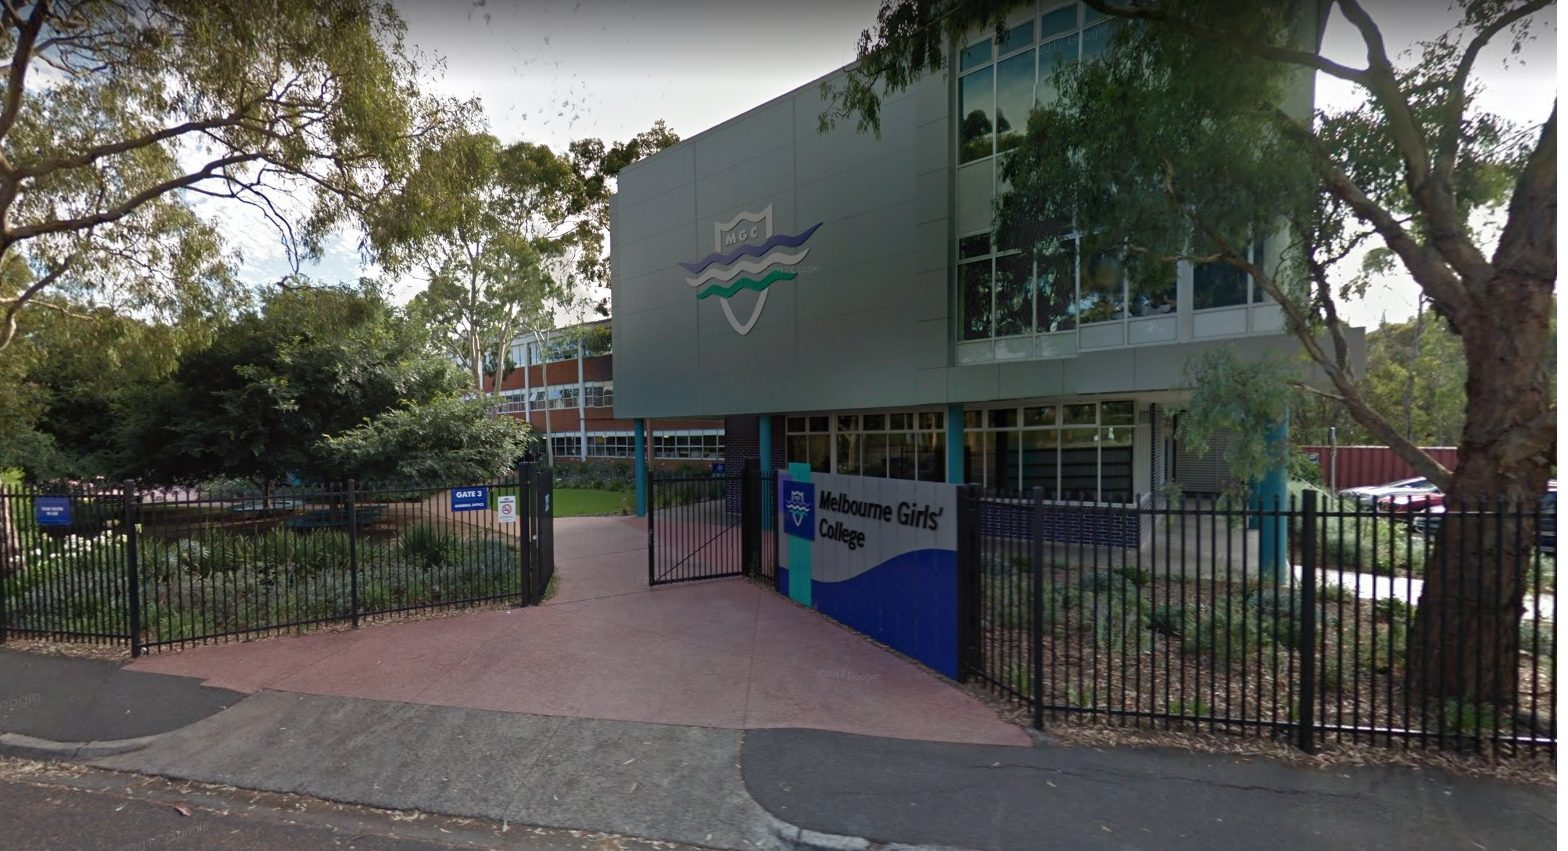 Article image for Melbourne Girls College removes ALL bins to prevent waste